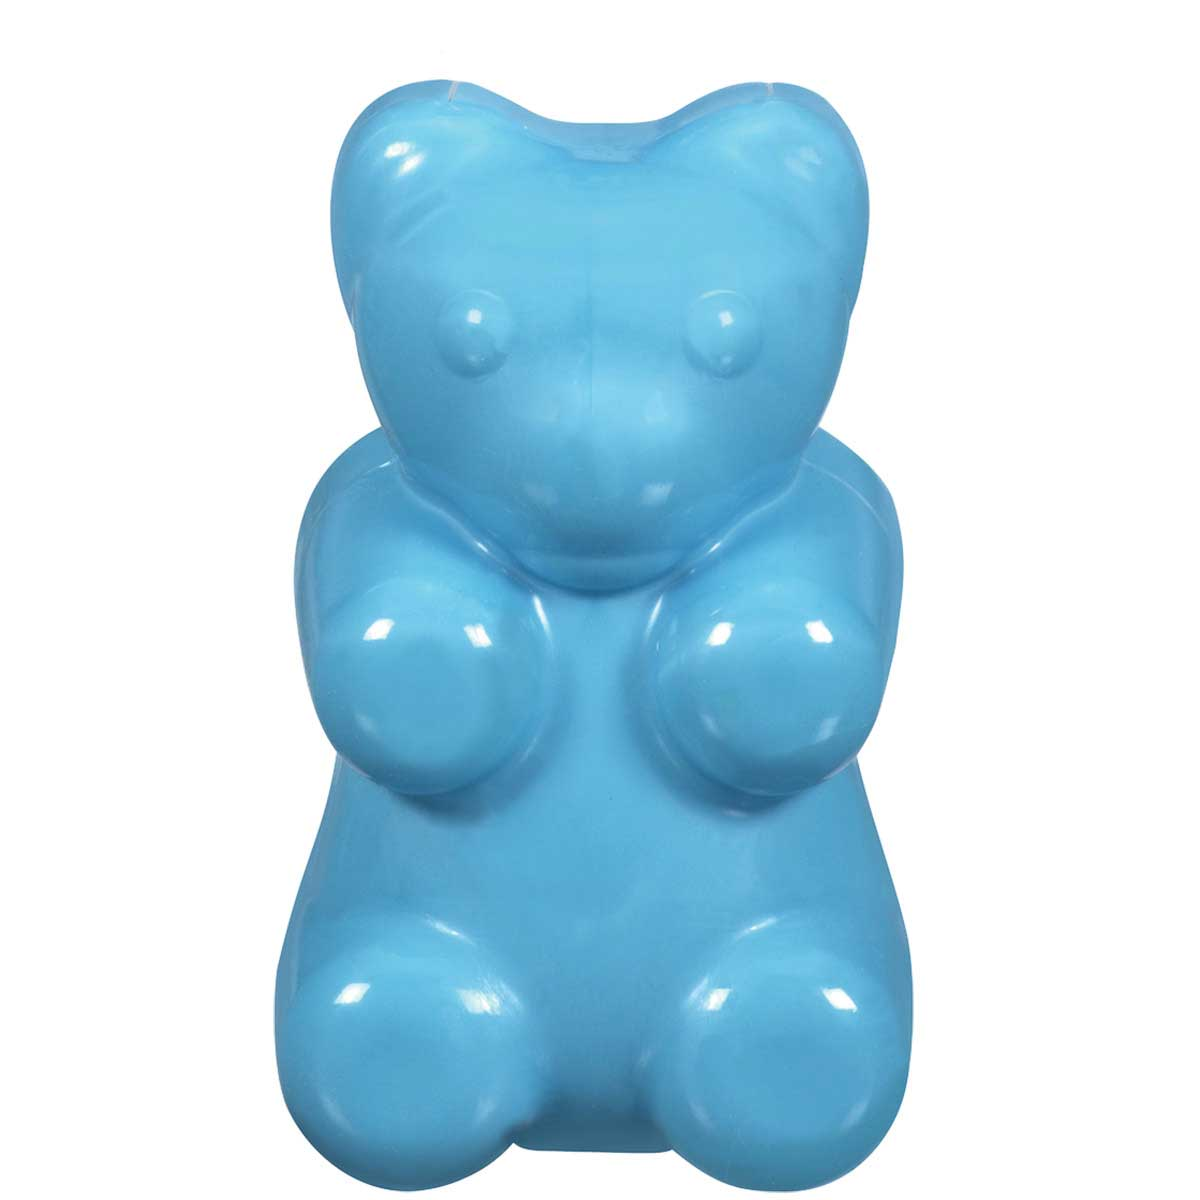 JW Megalast Megabear Medium 3.5 inch for Dogs